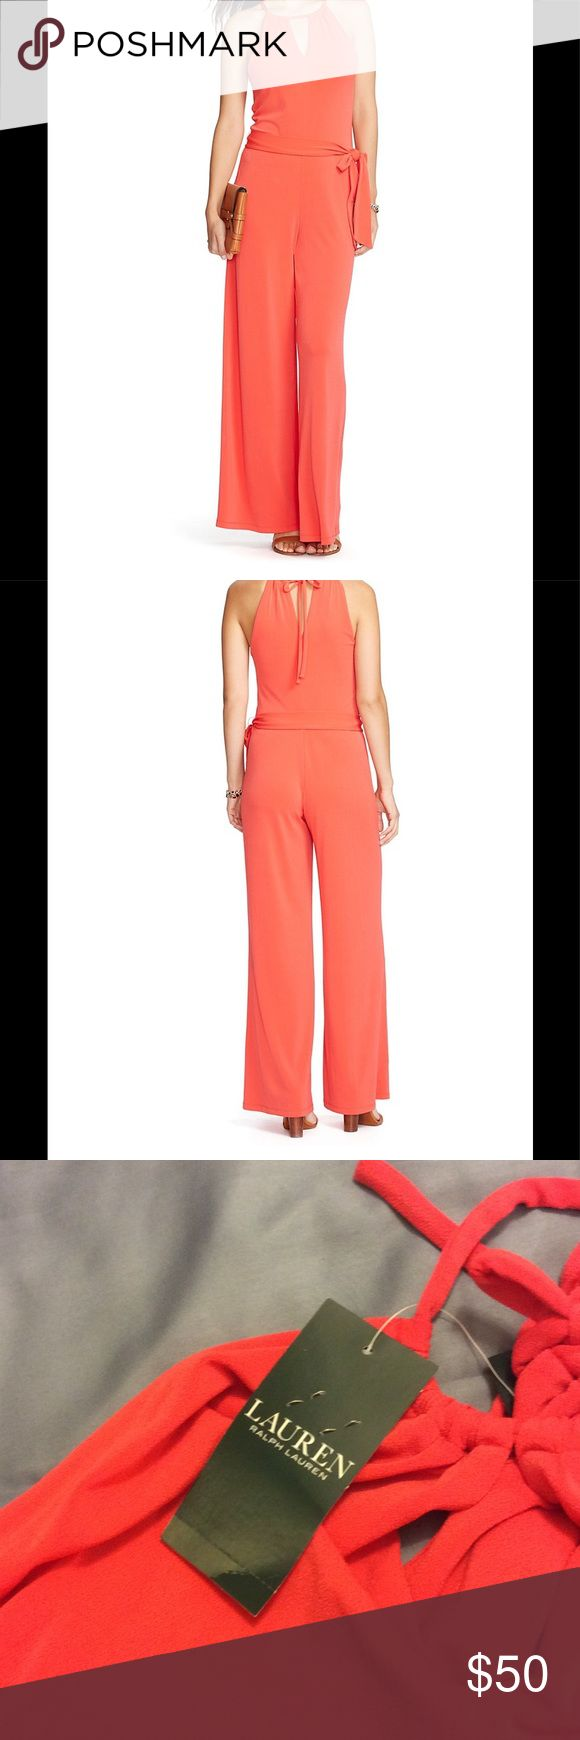 NWT Lauren by Ralph Lauren coral jumpsuit xl I had to have this jumpsuit. Unfortunately I did not try it on and it did not work for me. This is new with tags. It is a size extra large. It is wide leg. It is a coral color. Inseam is 32 inches. It does have one sign of pilling on the inside leg.  This has a tie waist and a lot of stretch. Lauren Ralph Lauren Other